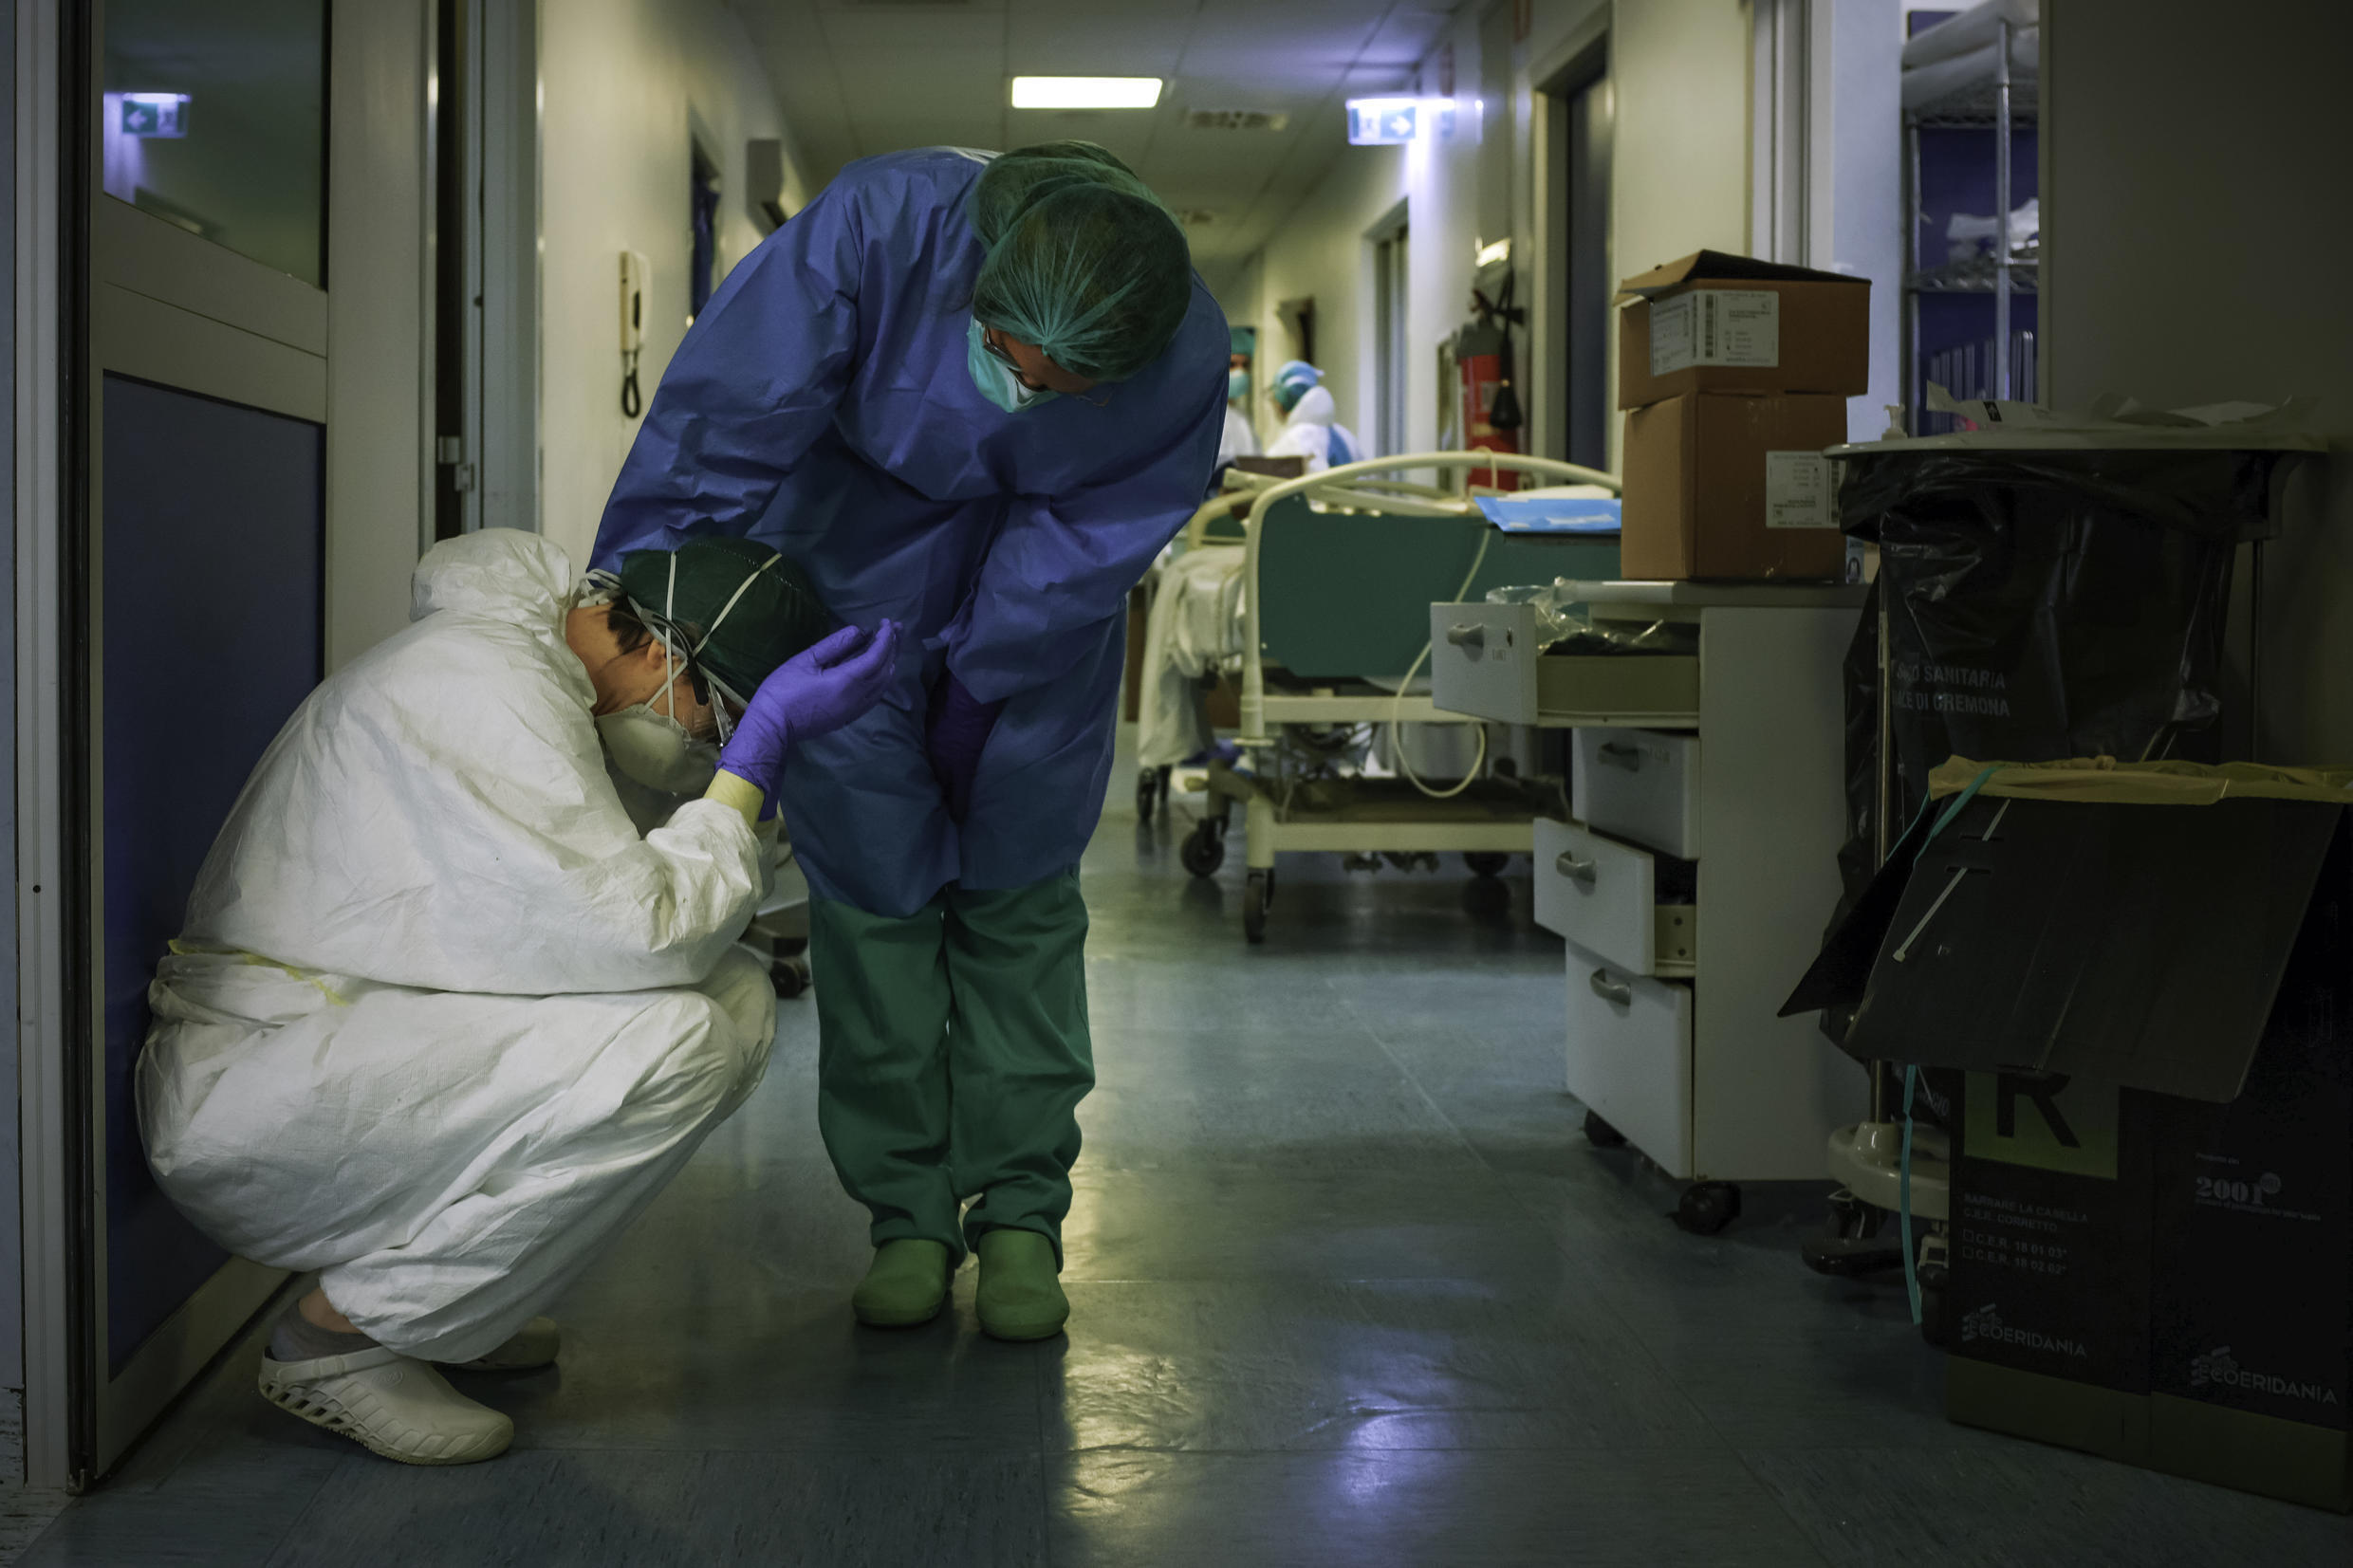 Health workers face physical danger and psychological stress in the pandemic